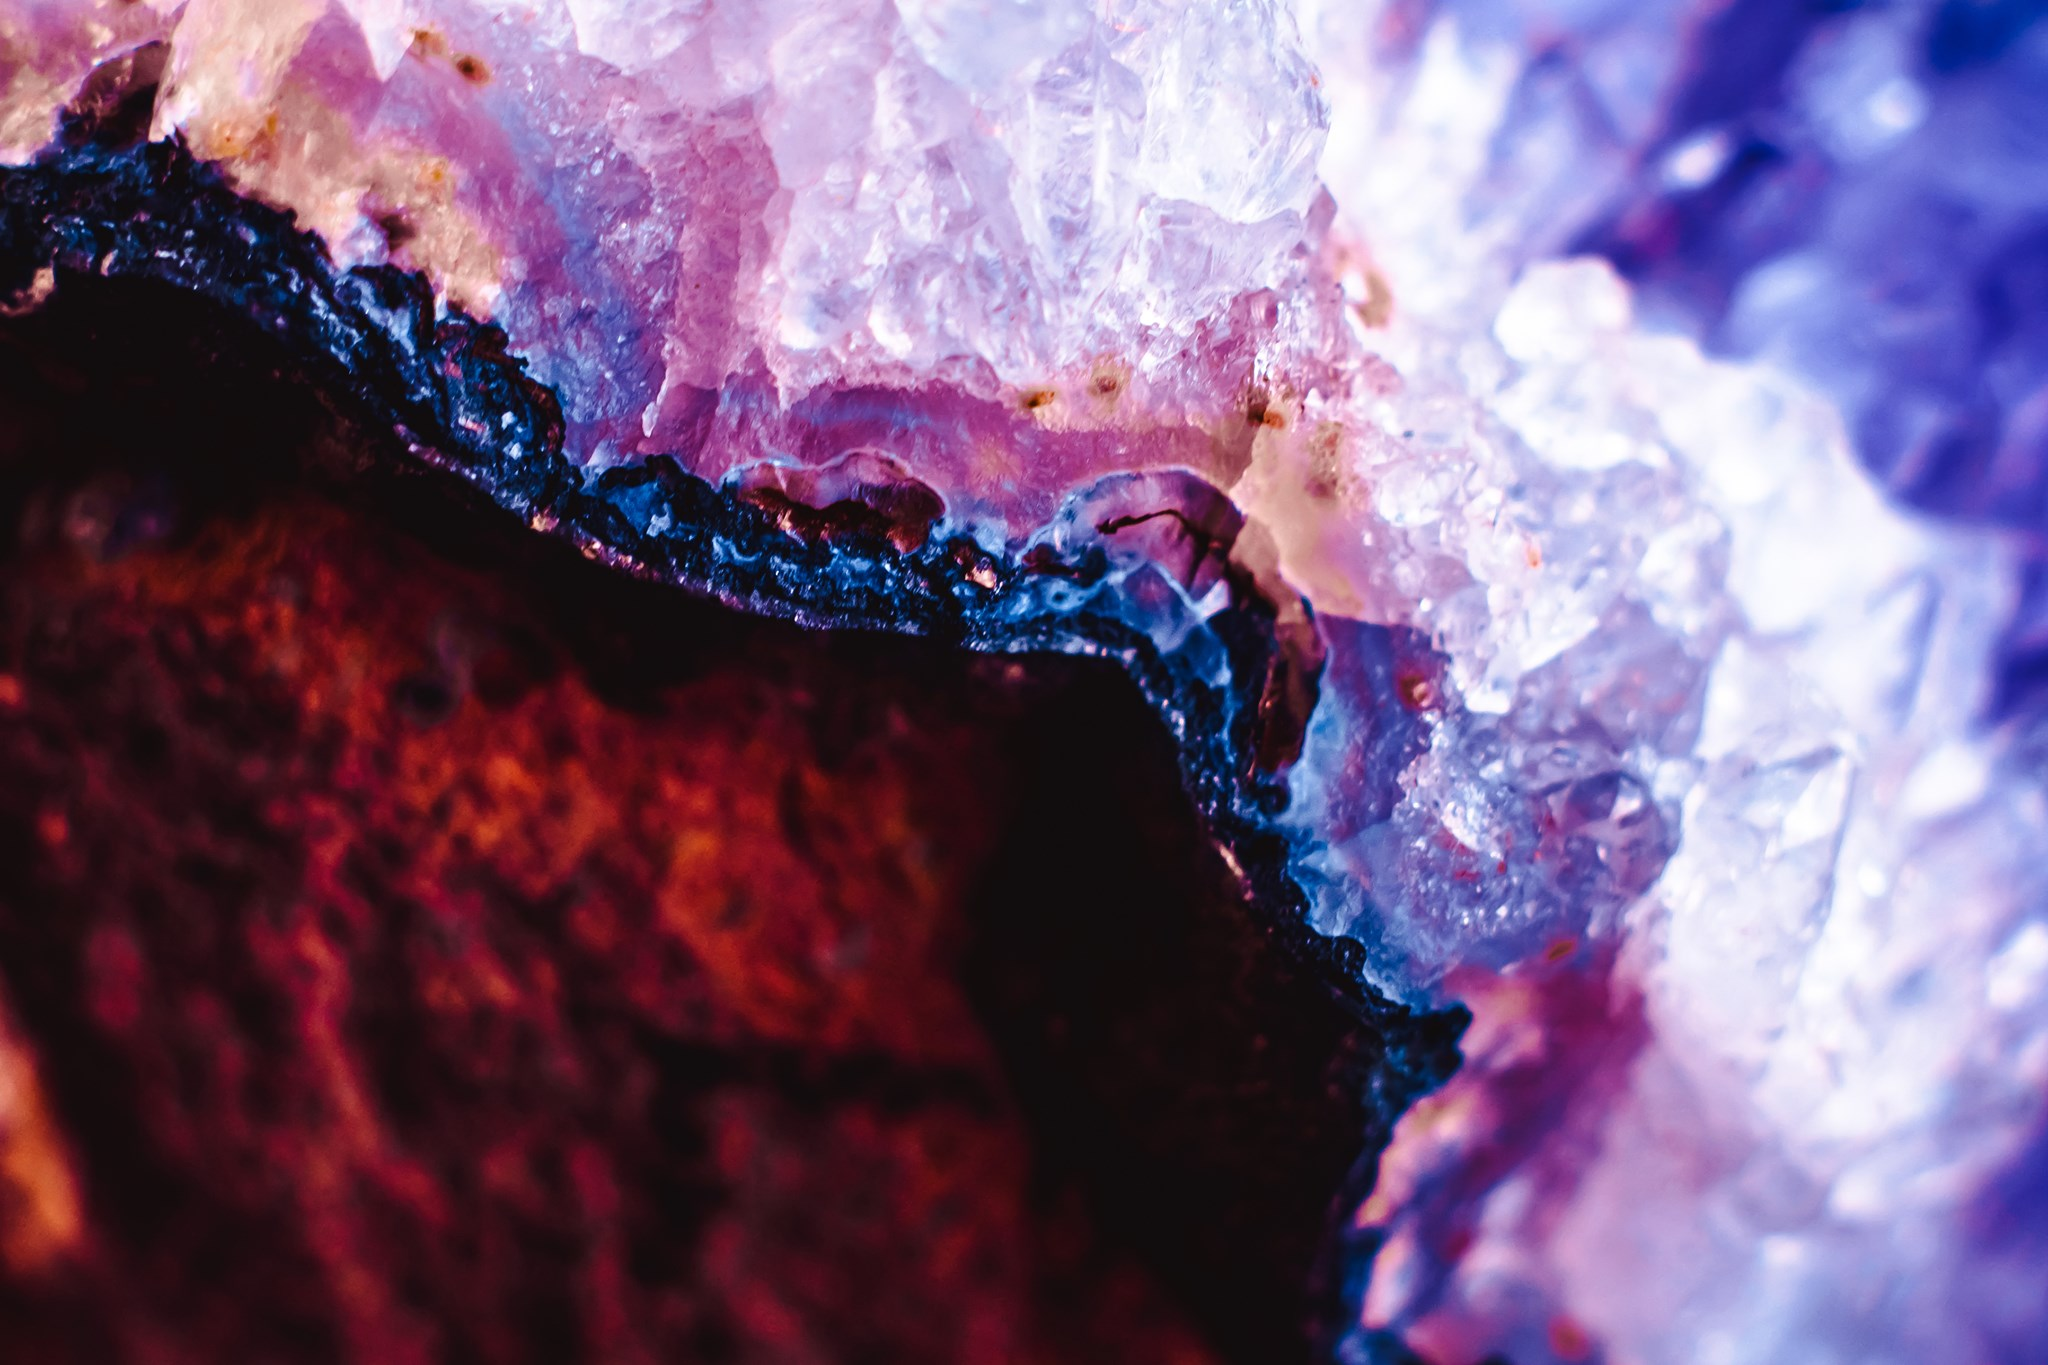 Evolve in Crystal Lake IL | Crystals and Stones, Minerals, Fossils, Rocks, Incense, Metaphysical and New-Age Books, Handmade, Eco-Conscious, Local Artists and More  |  A Gathering of Spiritual Paths and Esoteric Knowledge